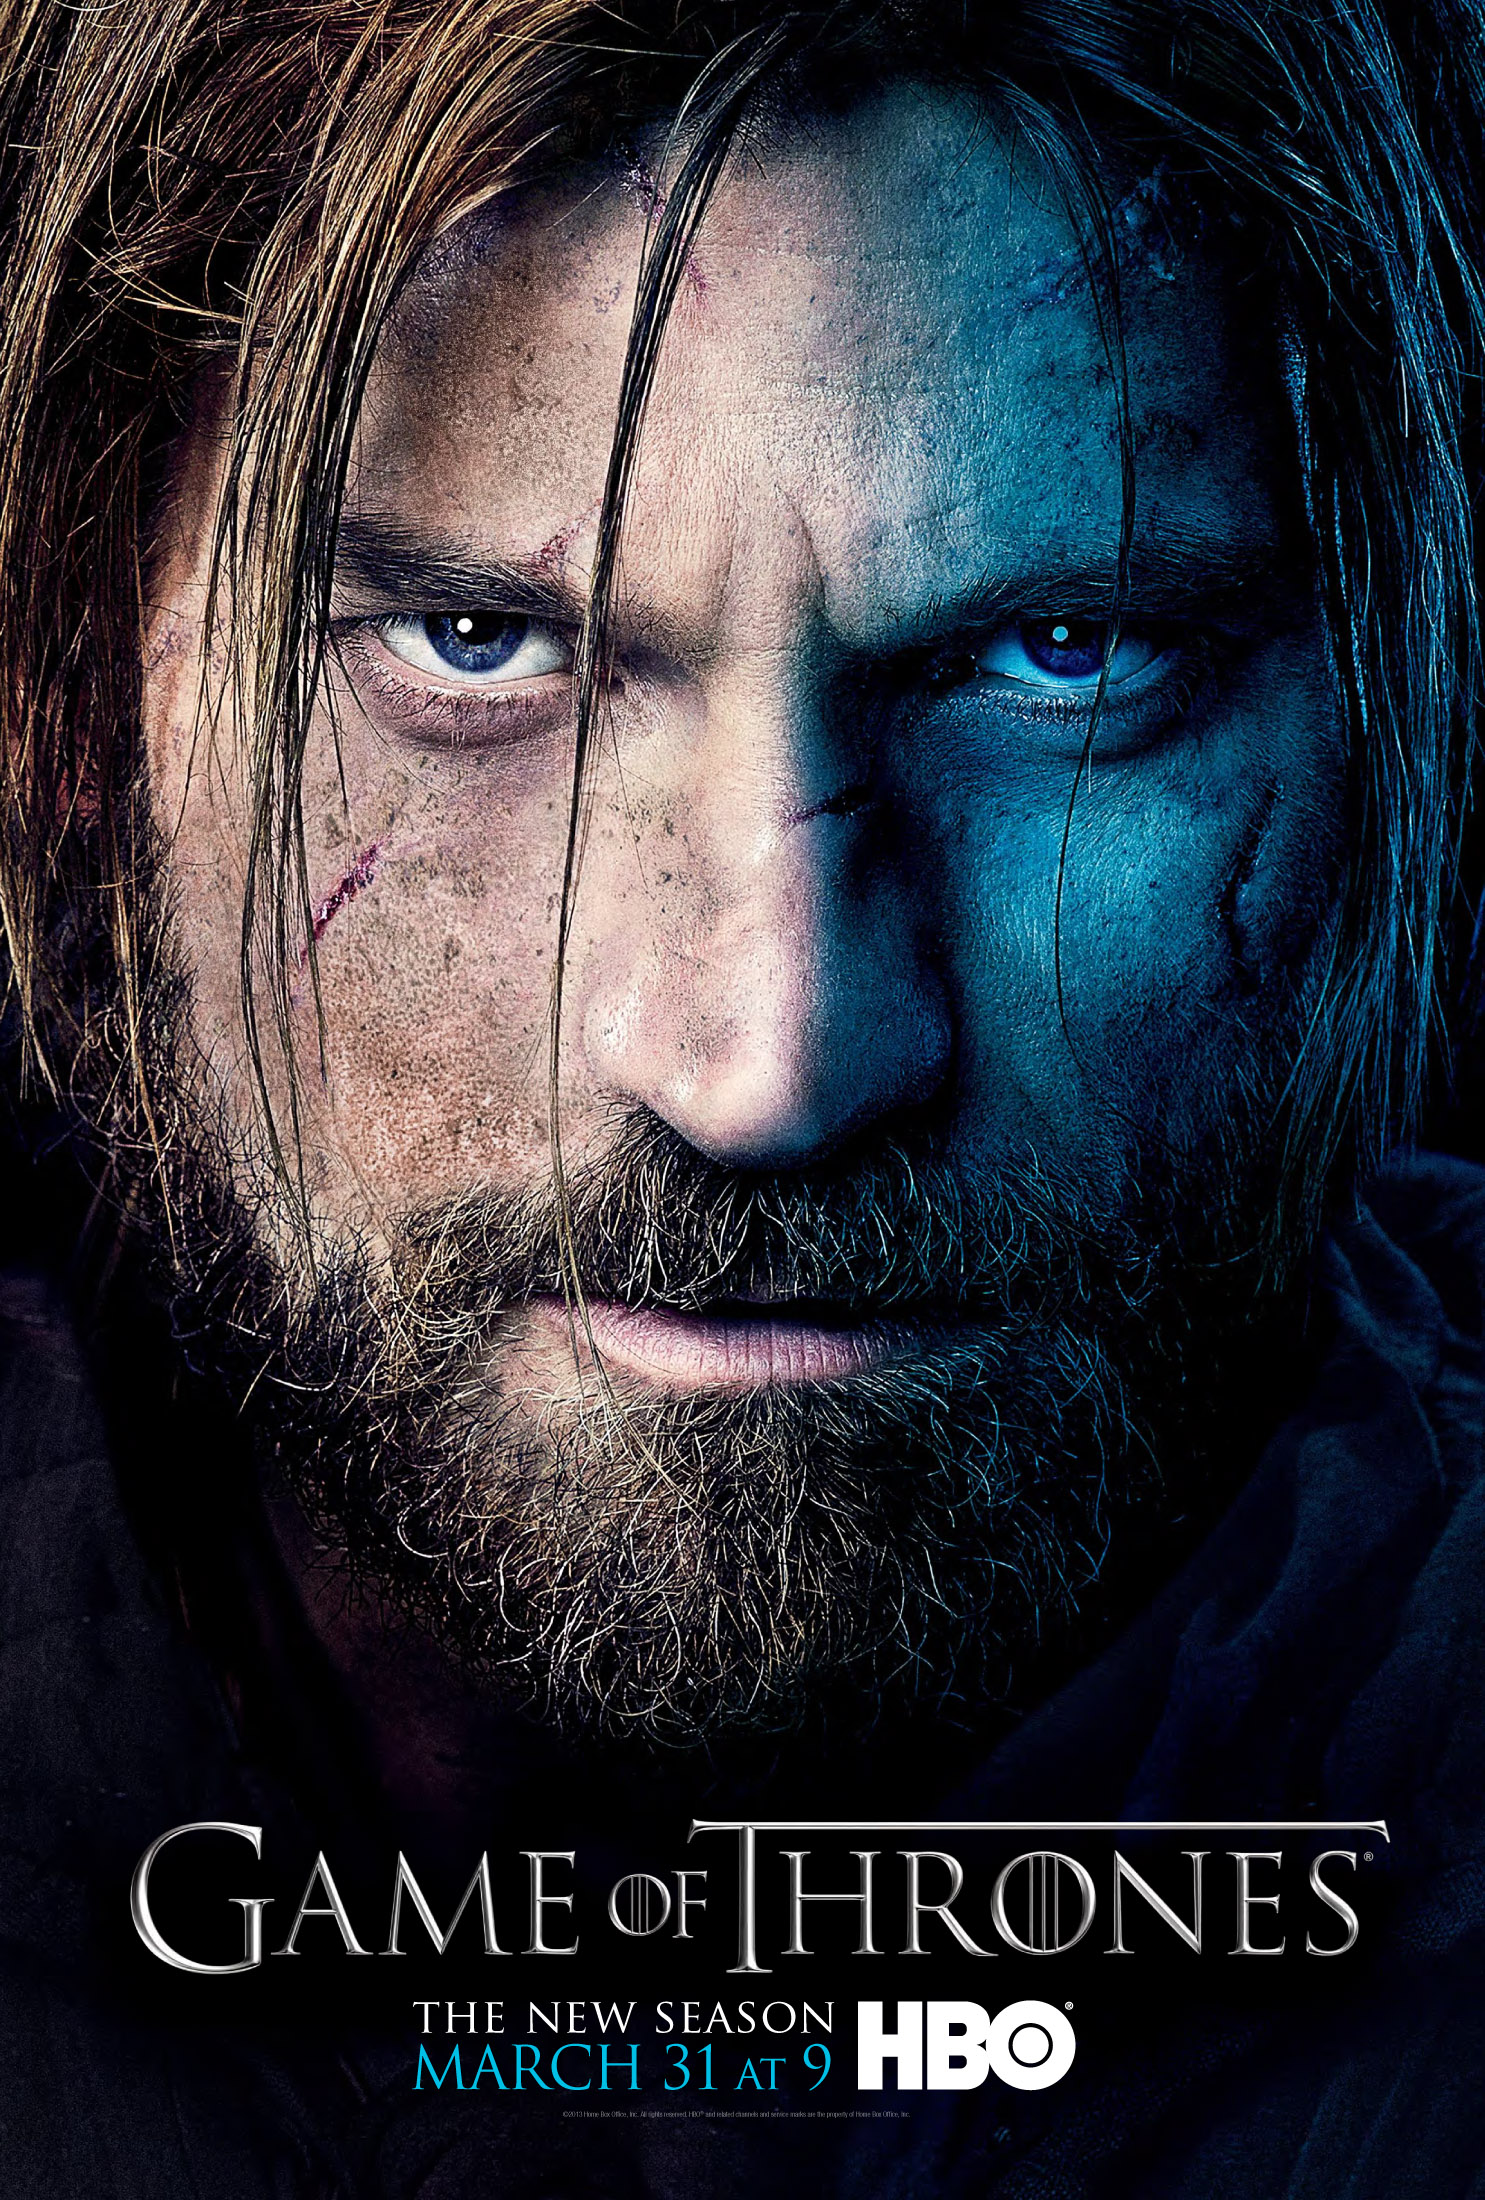 Jaime Lannister Game of Thrones season three poster.